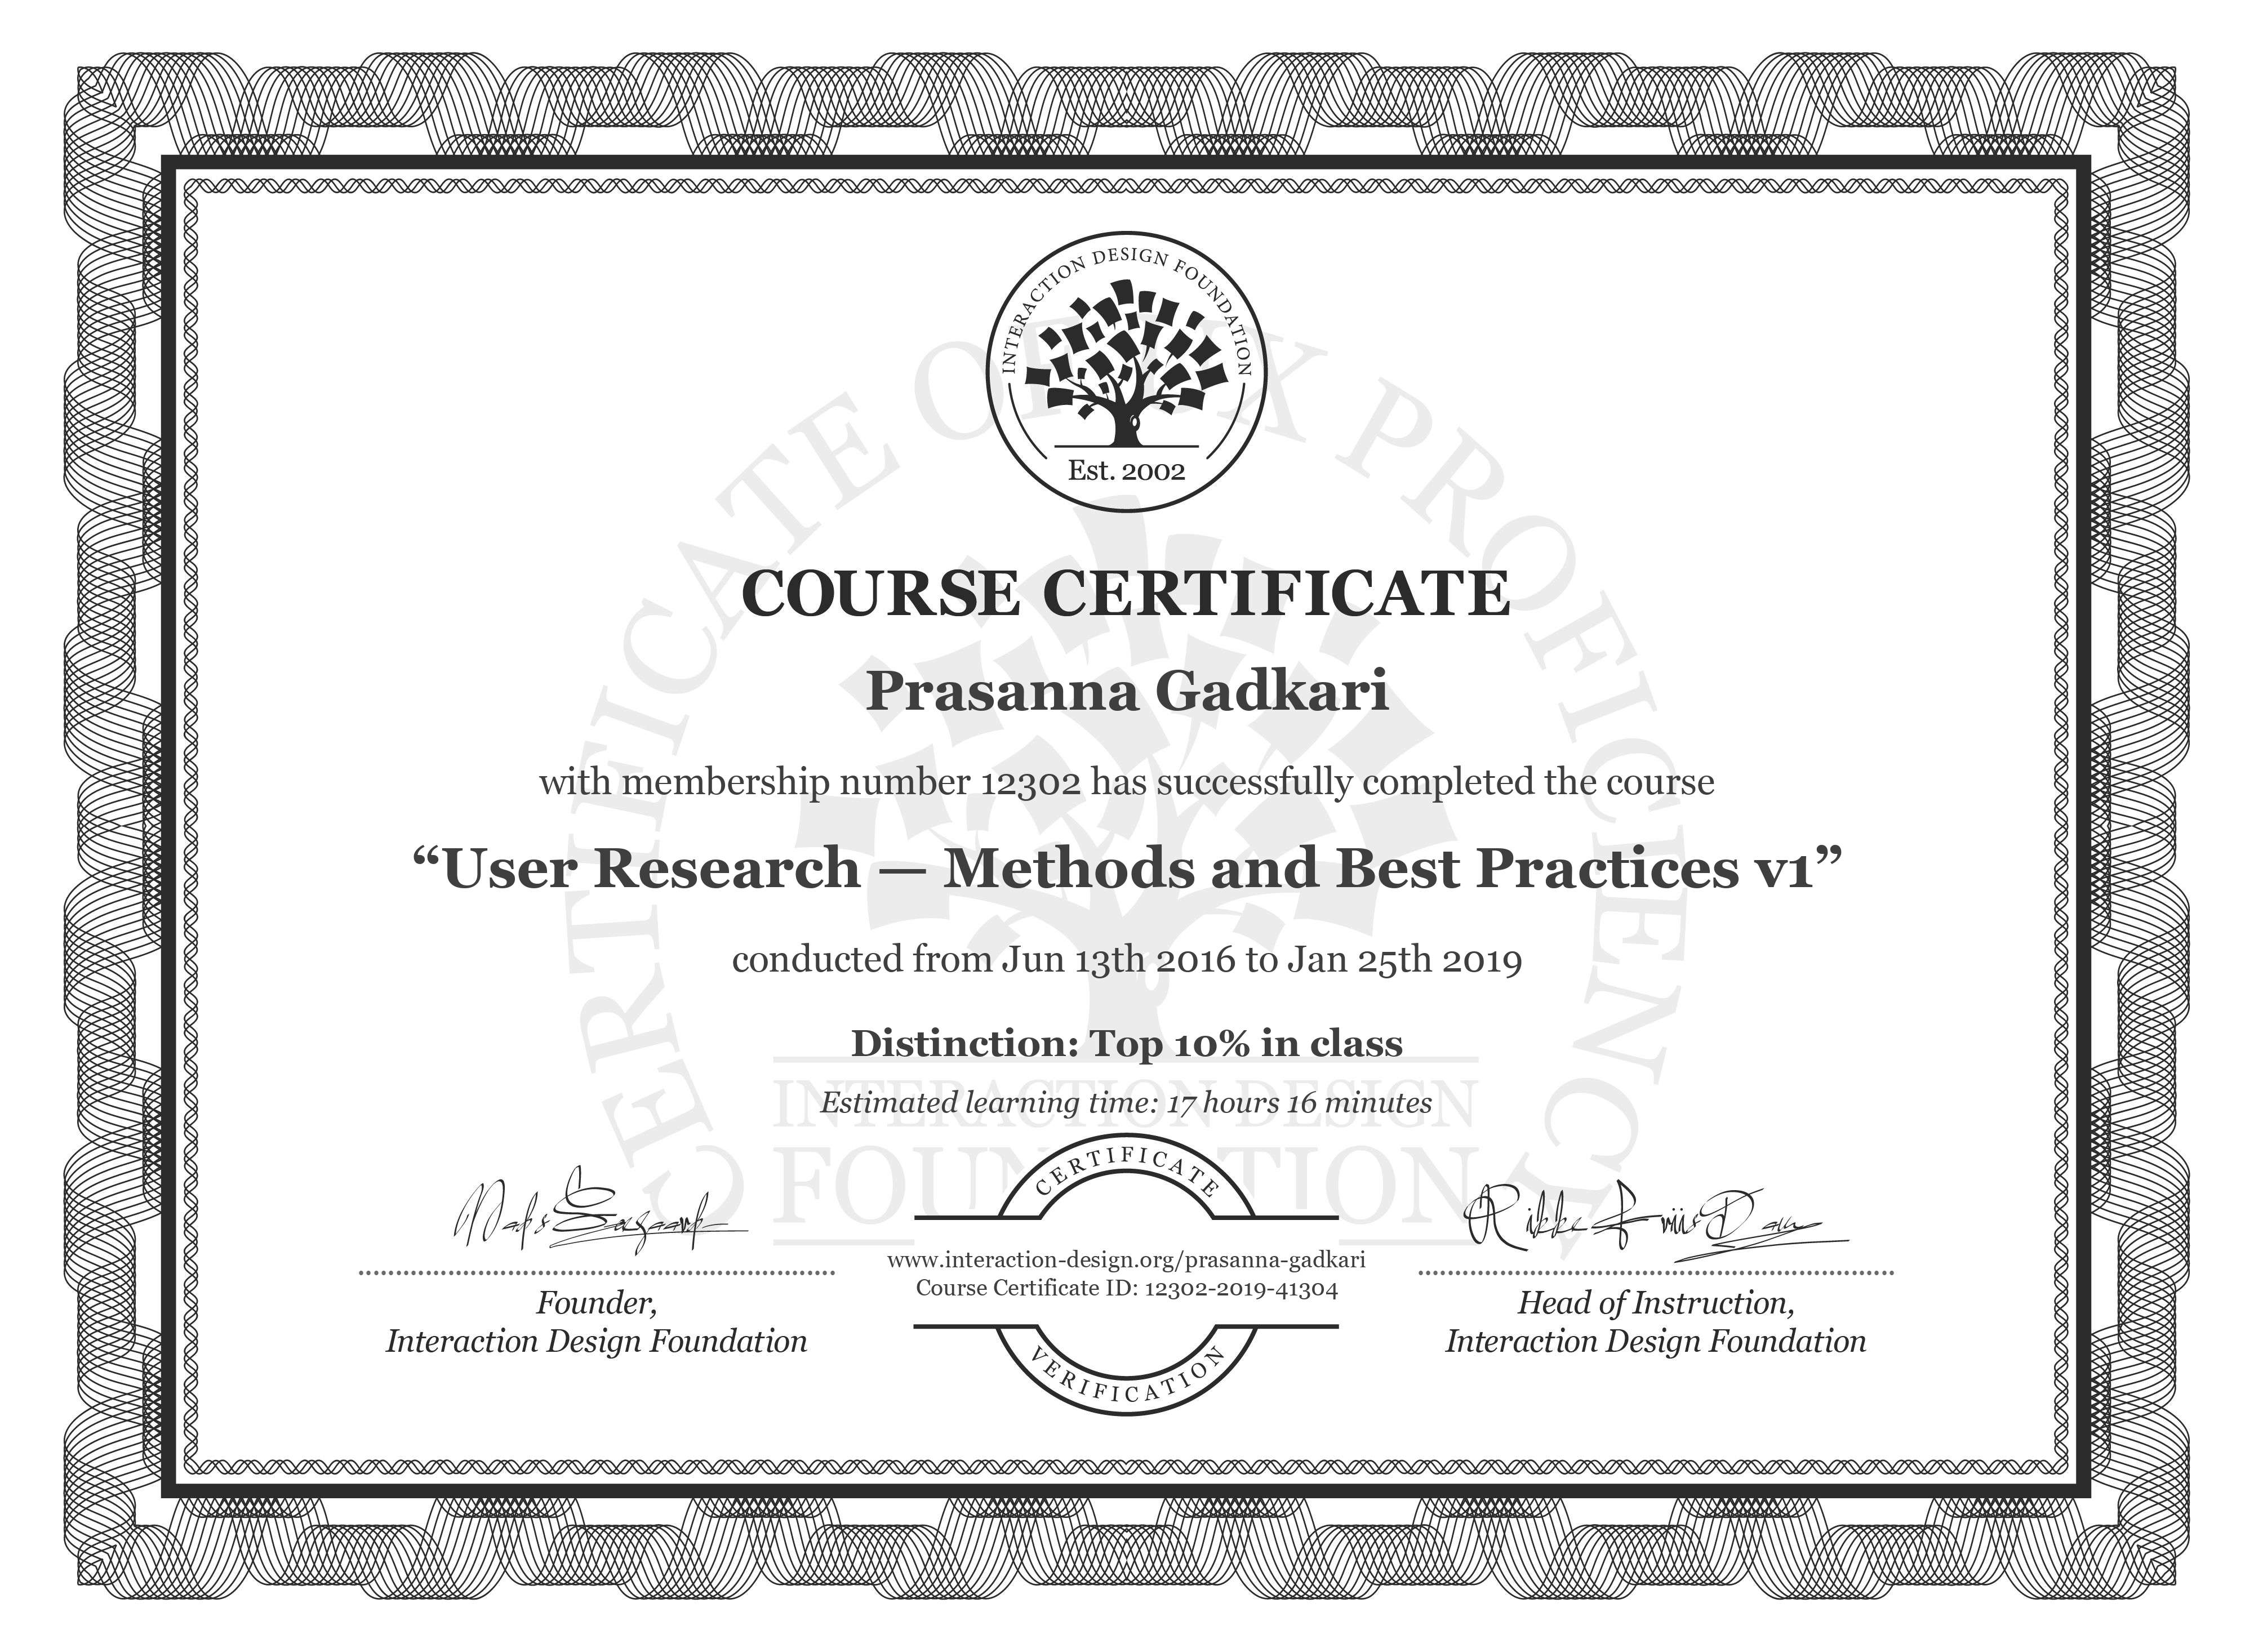 Prasanna Gadkari: Course Certificate - User Research — Methods and Best Practices